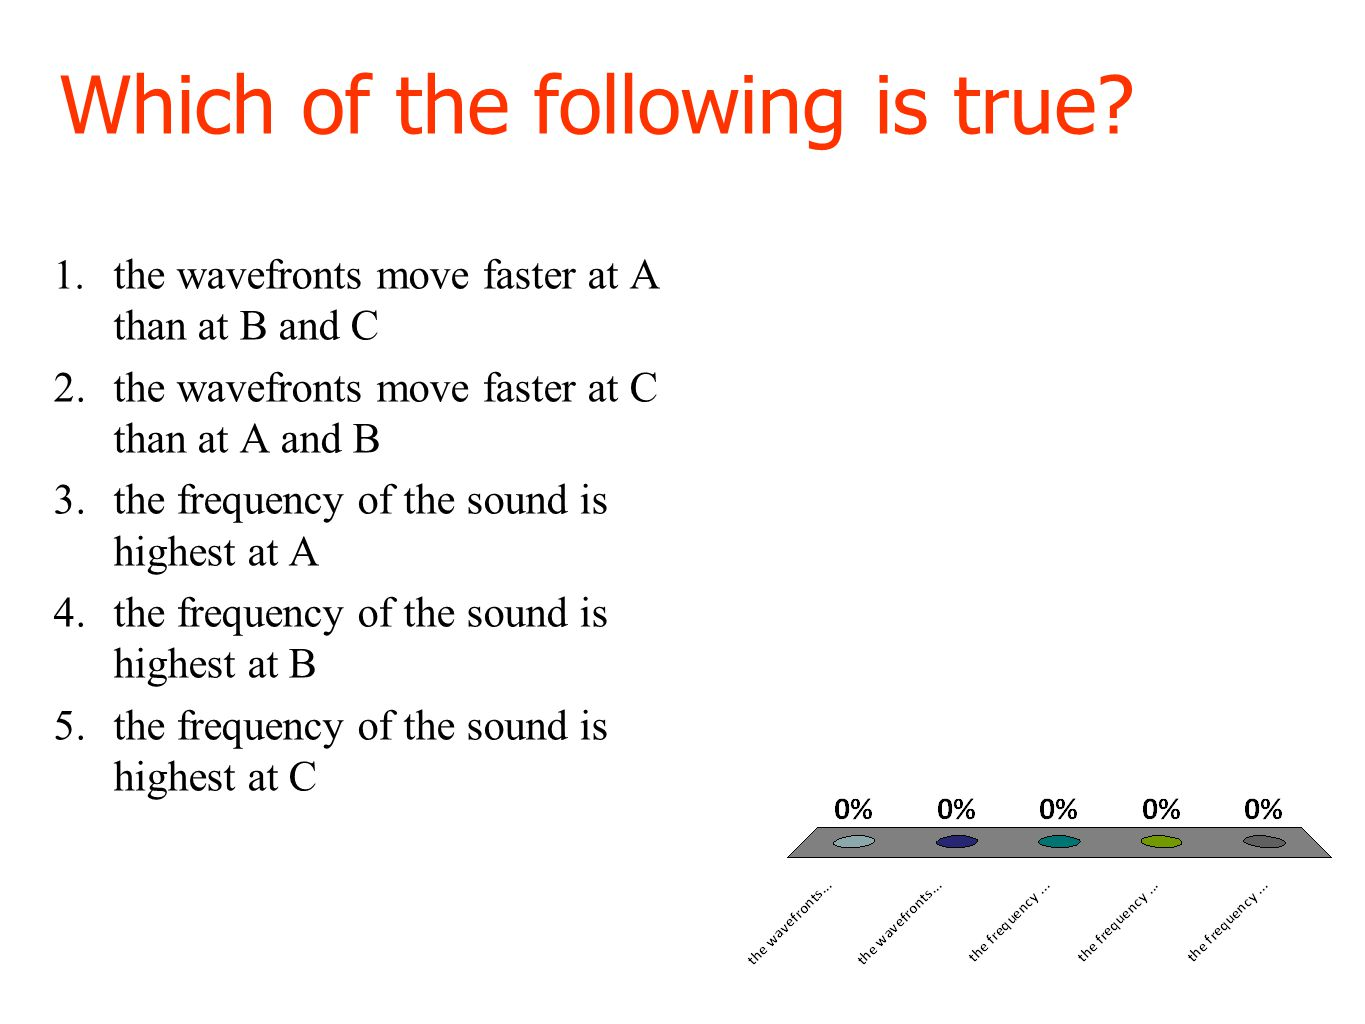 Which of the following is true? 1. the wavefronts move faster at A than at B and C 2.the wavefronts move faster at C than at A and B 3.the frequency o